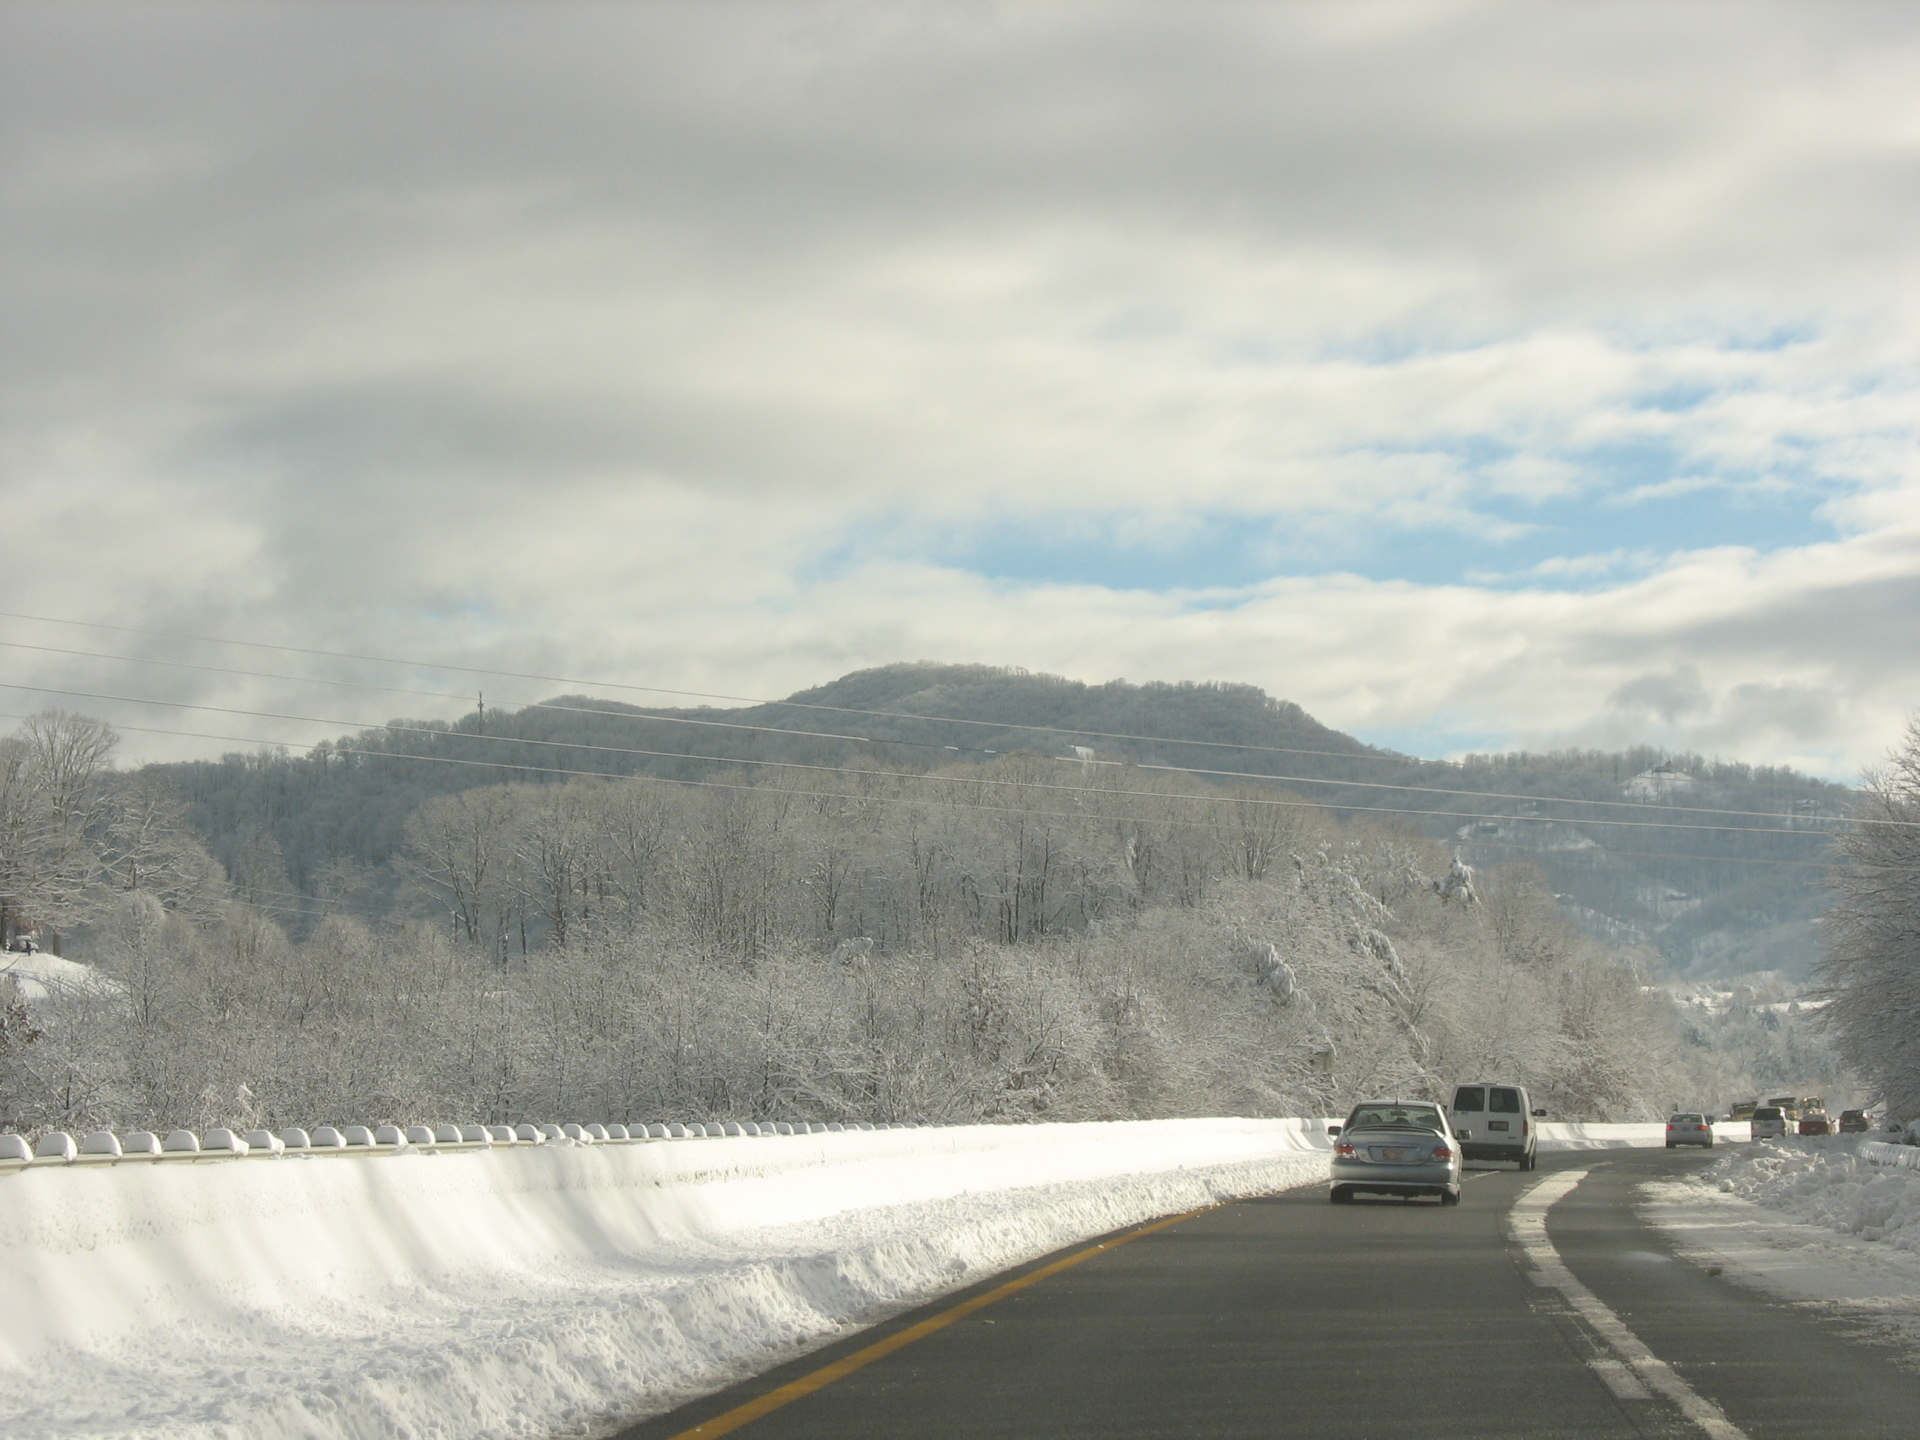 Rt 441 in the winter